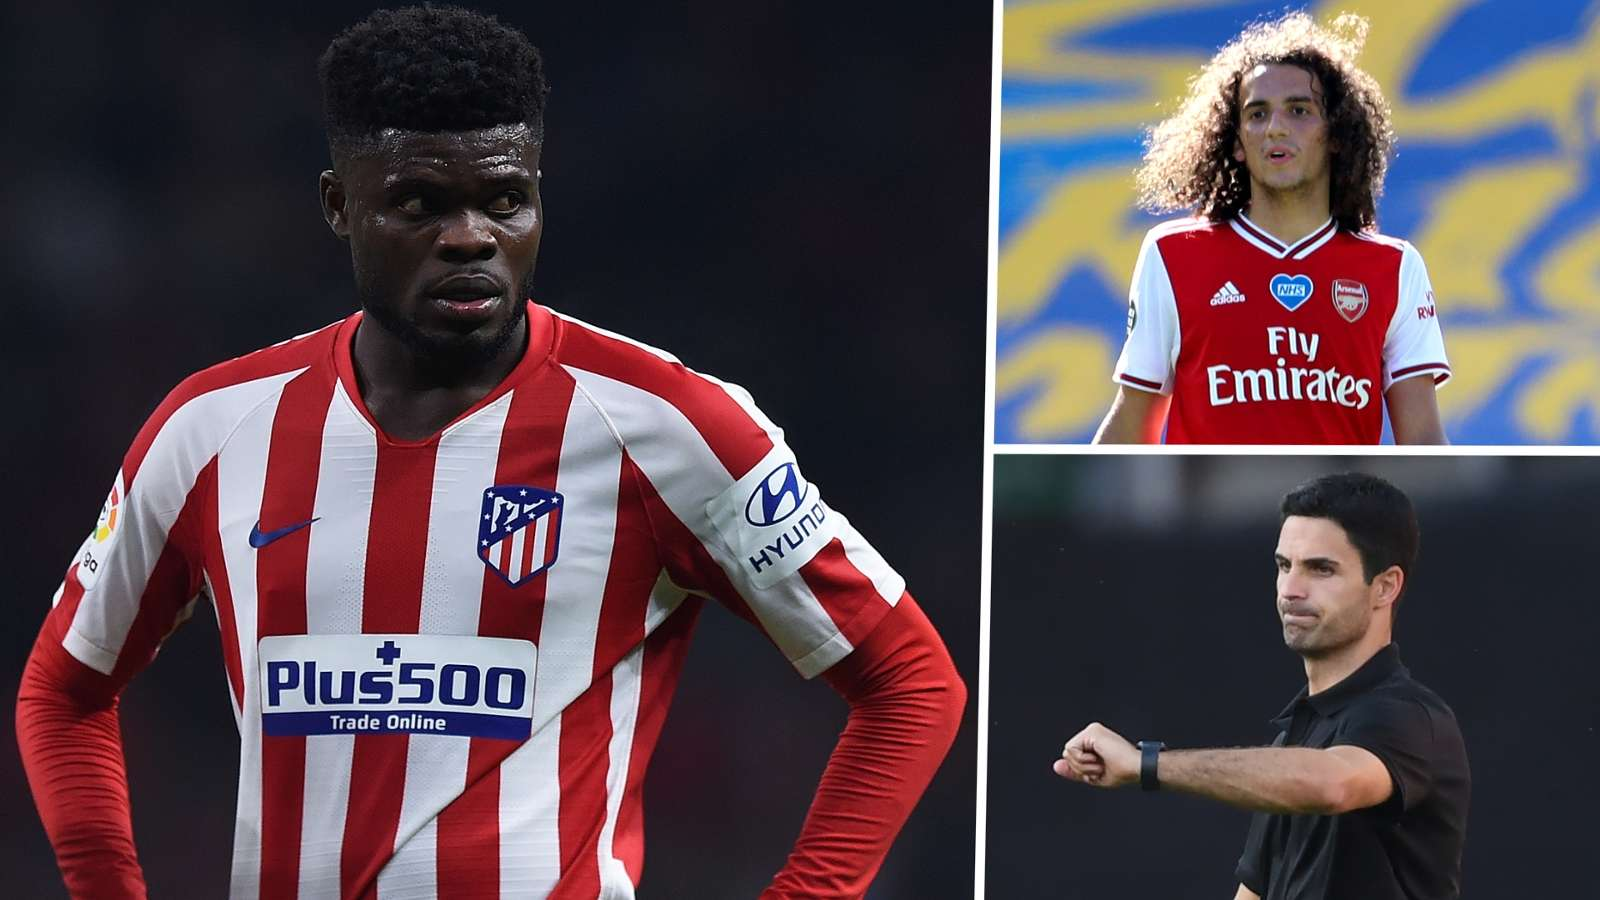 Guendouzi out, Partey in? Why Arteta should cash-in on Arsenal's 'Golden Boy'